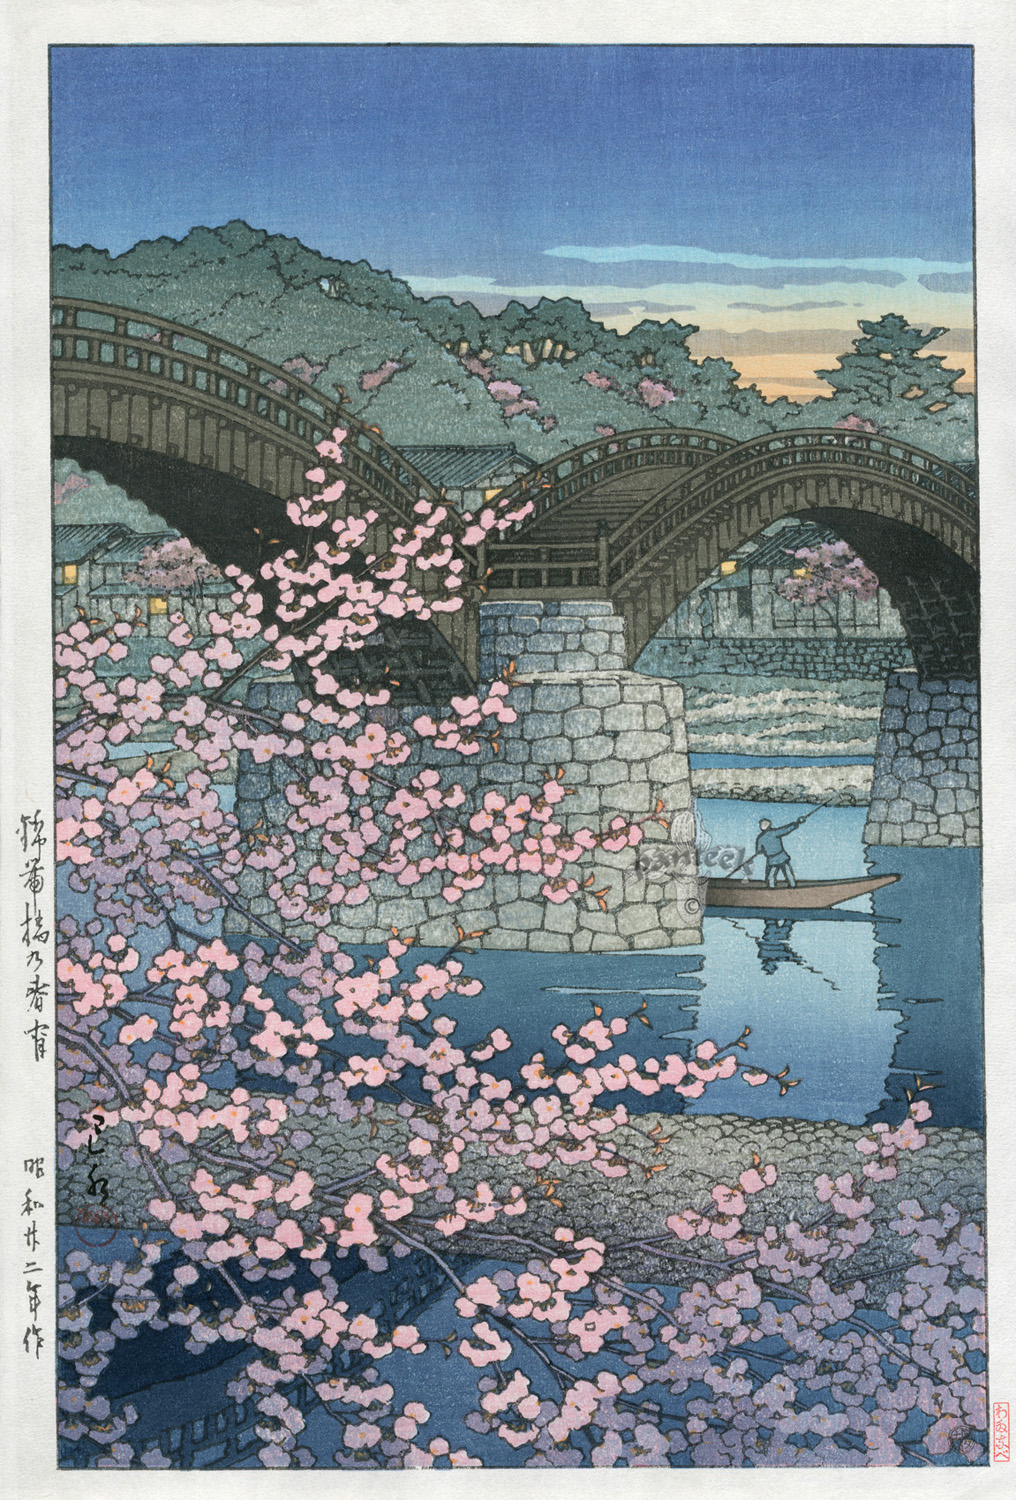 That's Inked Up: The Splendors of Japan and Kawase Hasui